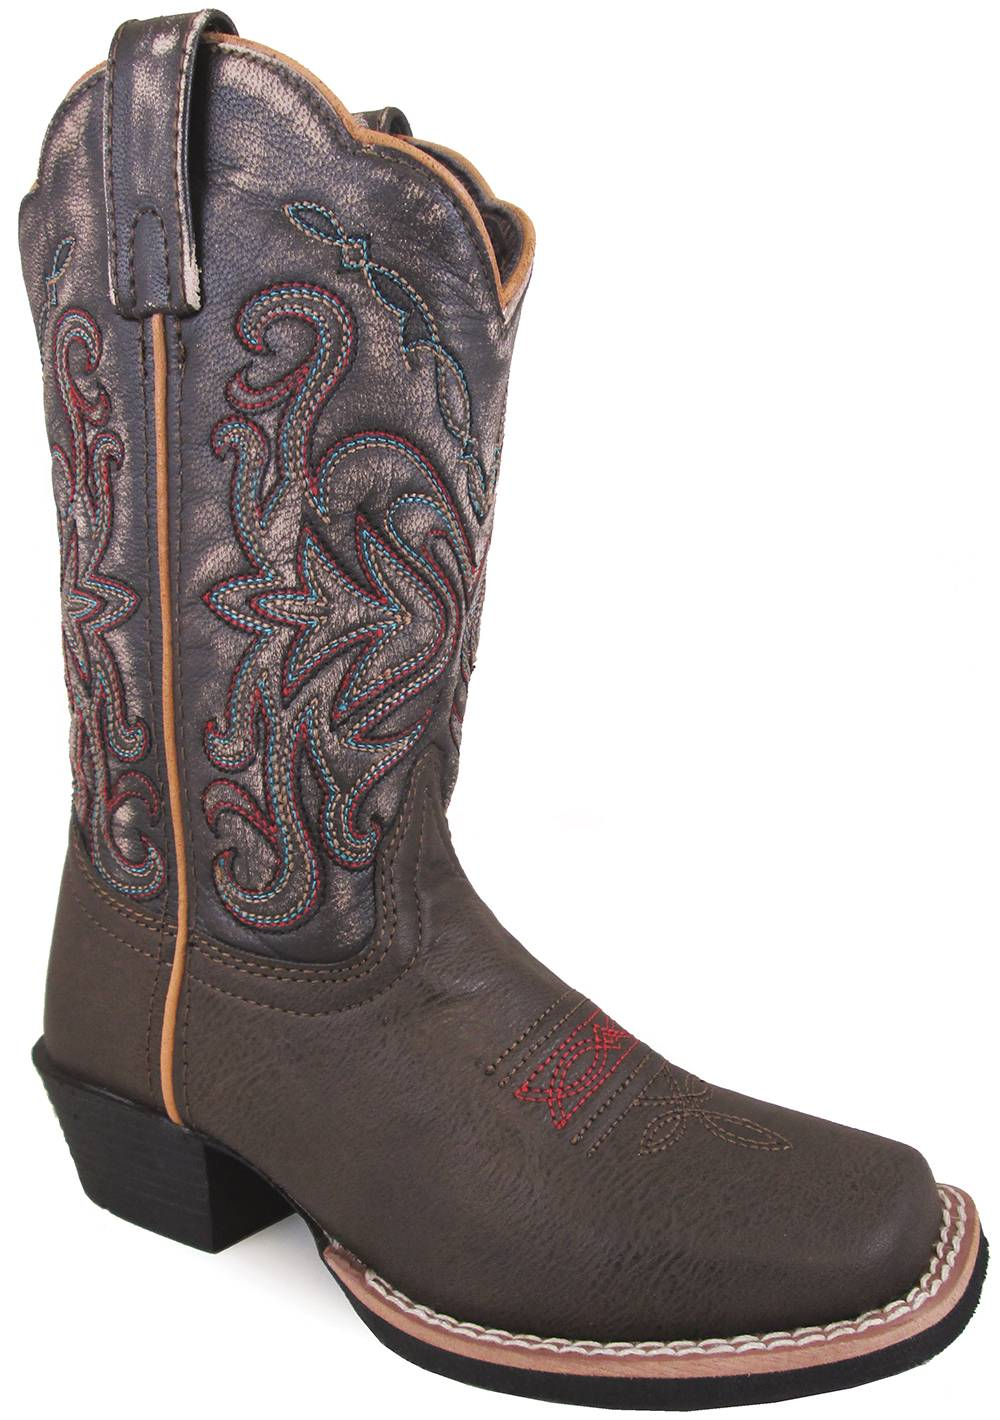 Smoky Mountain Children Fusion 2 Square Toe Boots - Brown/Black Vintage